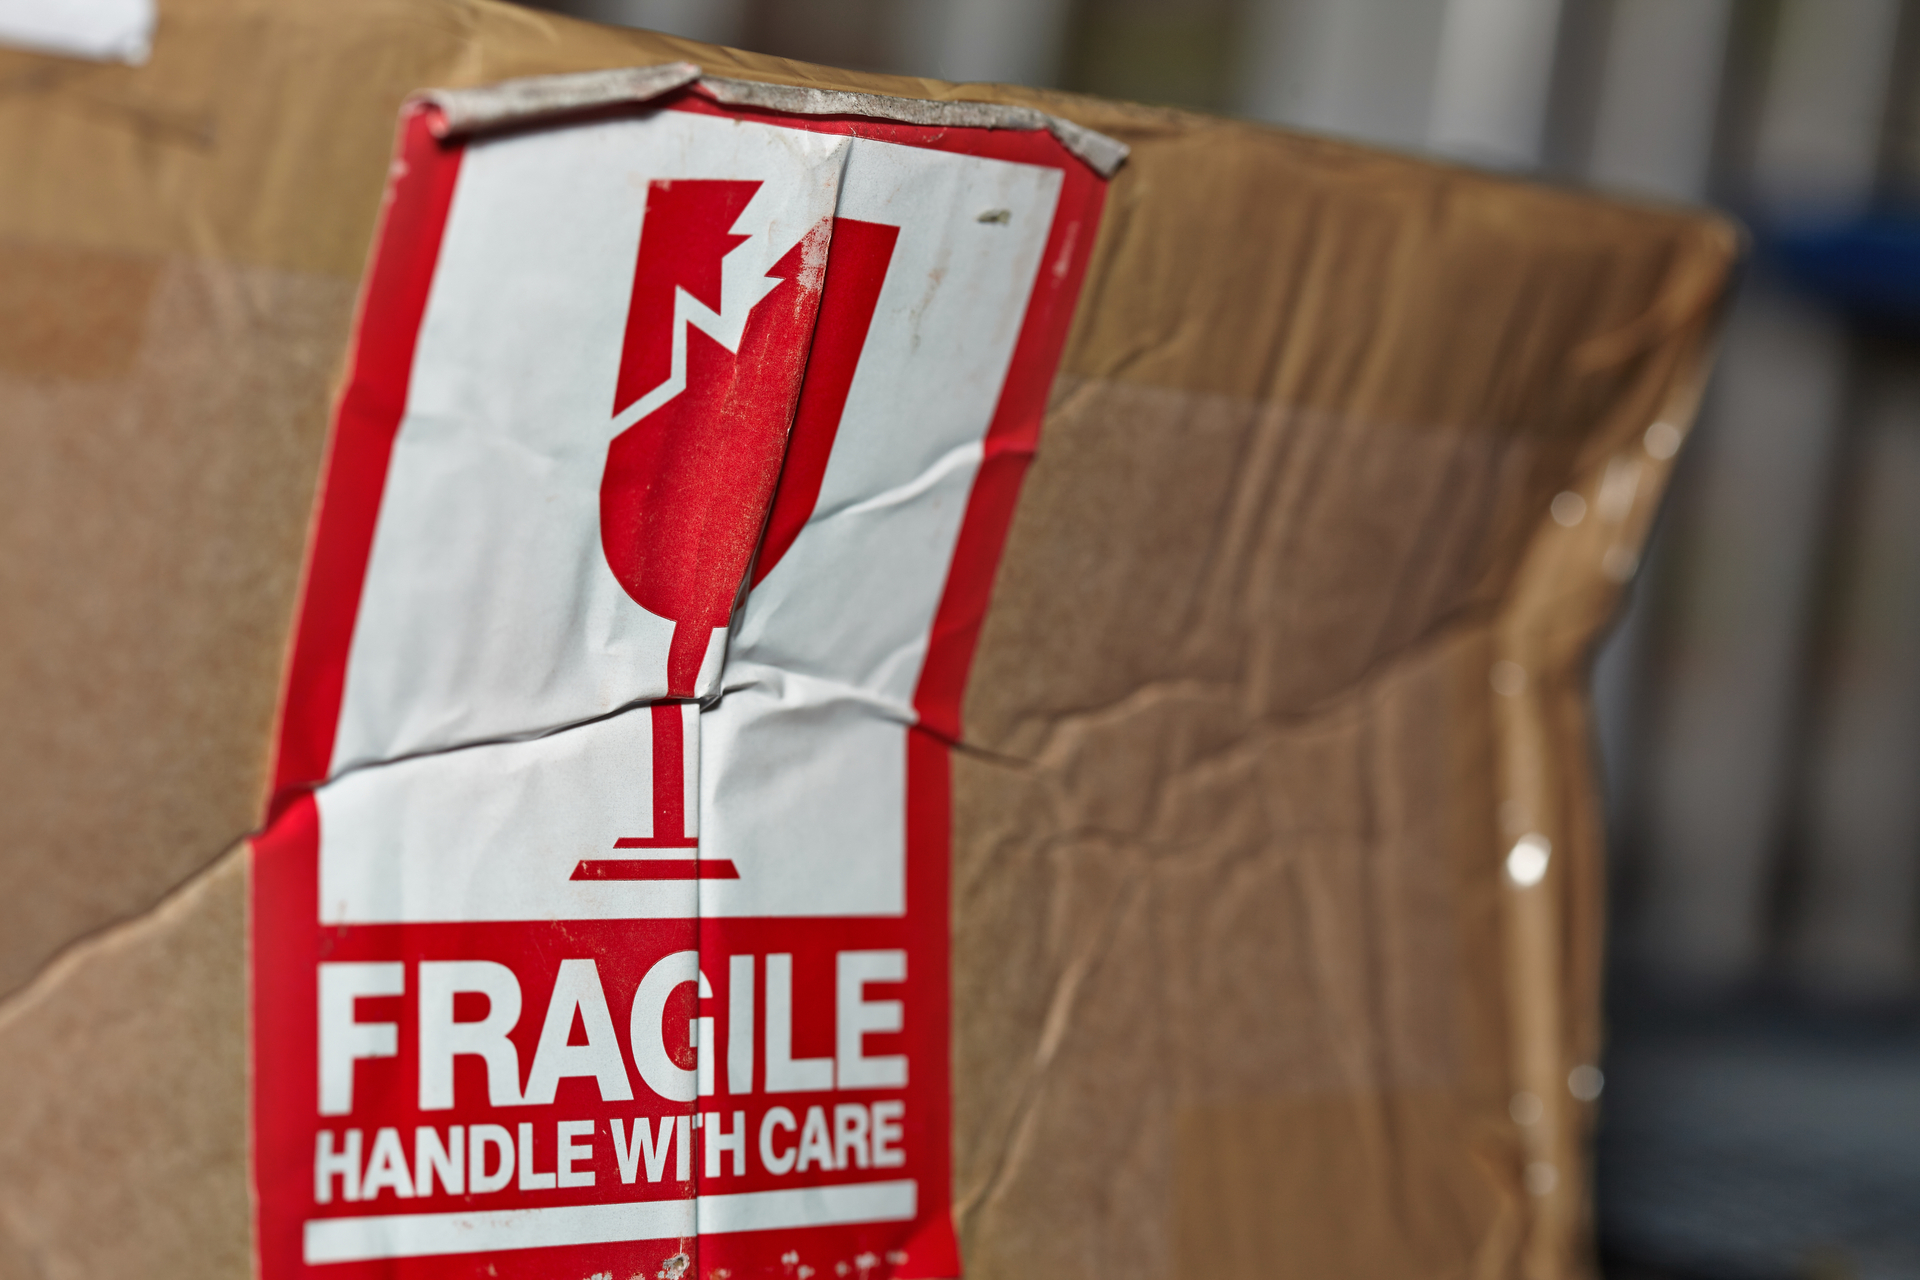 Fragile Handle With Care Sign On A Damaged Package